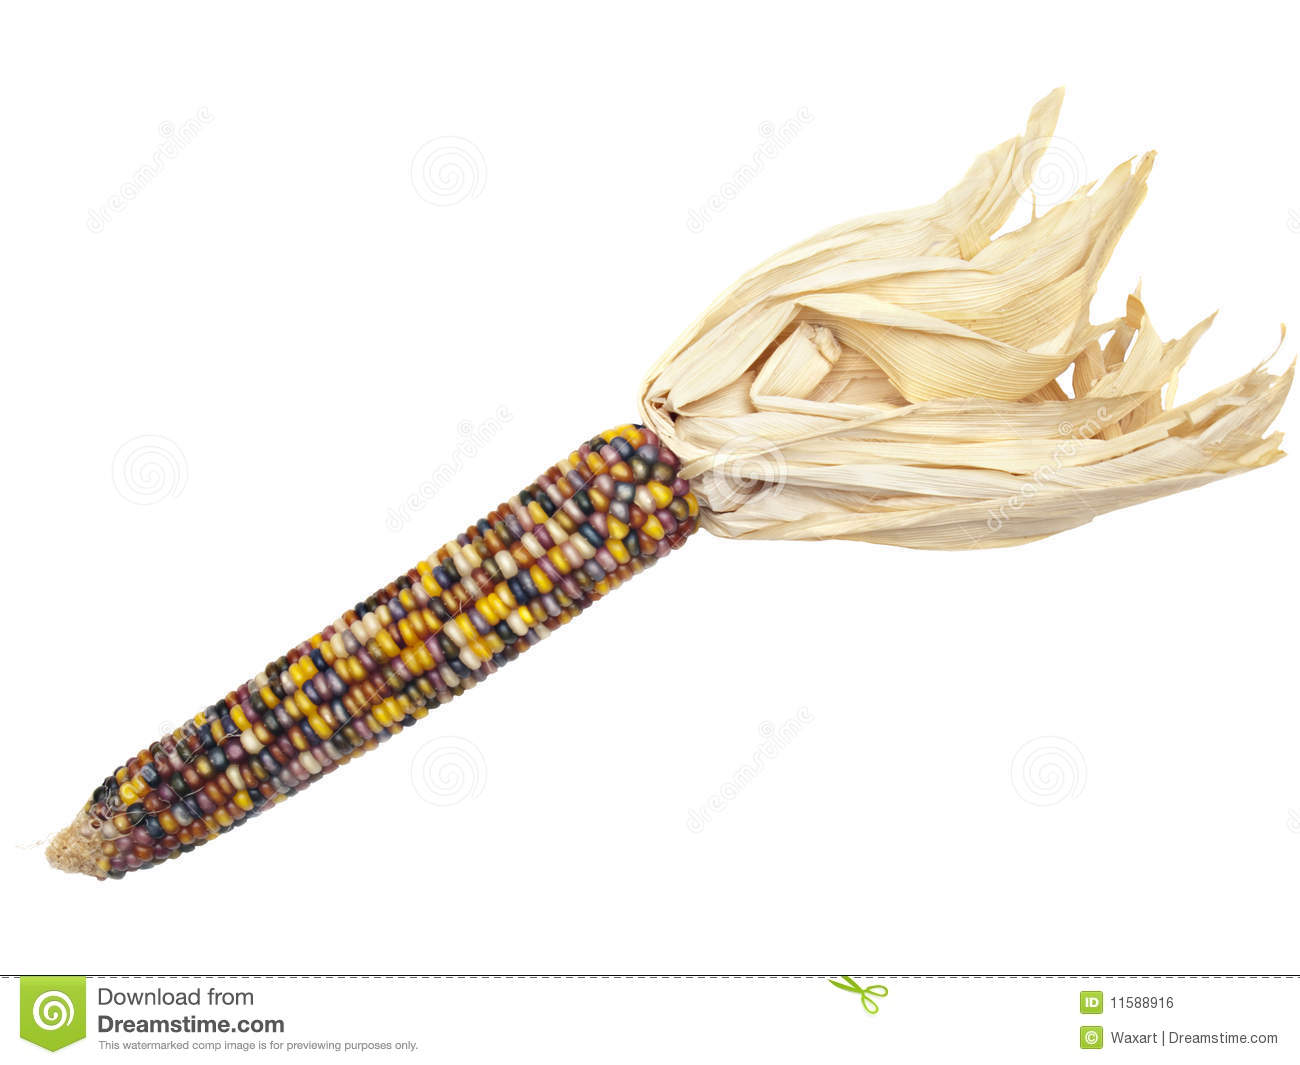 Ear Of Indian Corn On White Royalty Free Stock Image - Image: 11588916